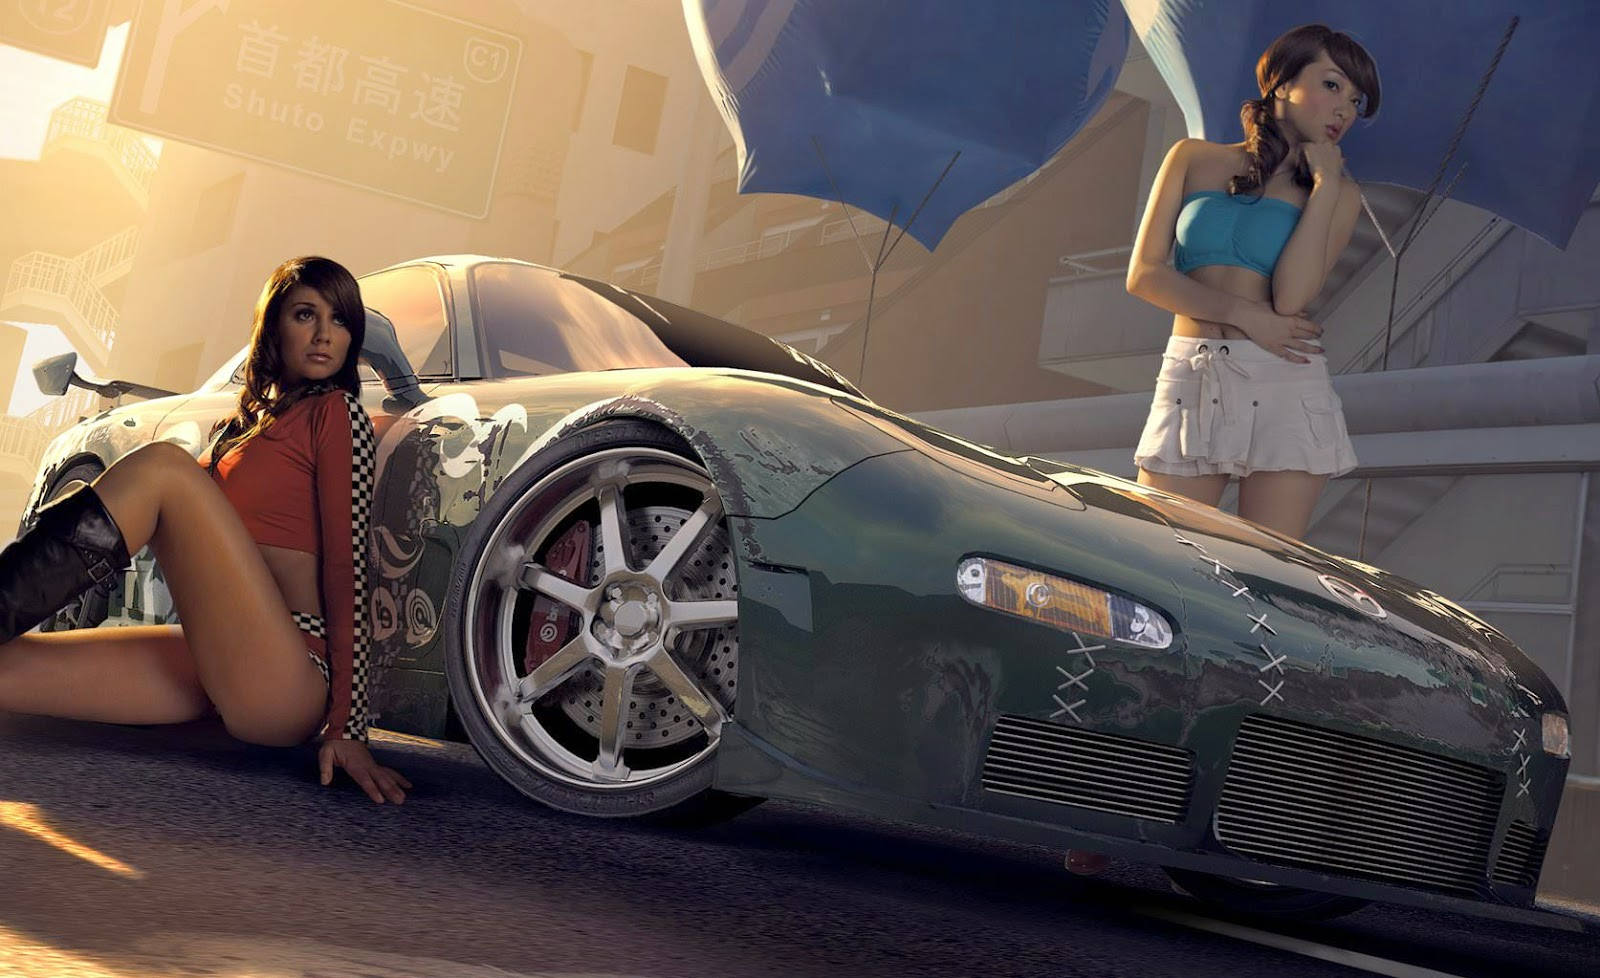 need for speed wallpaper featuring hot girls